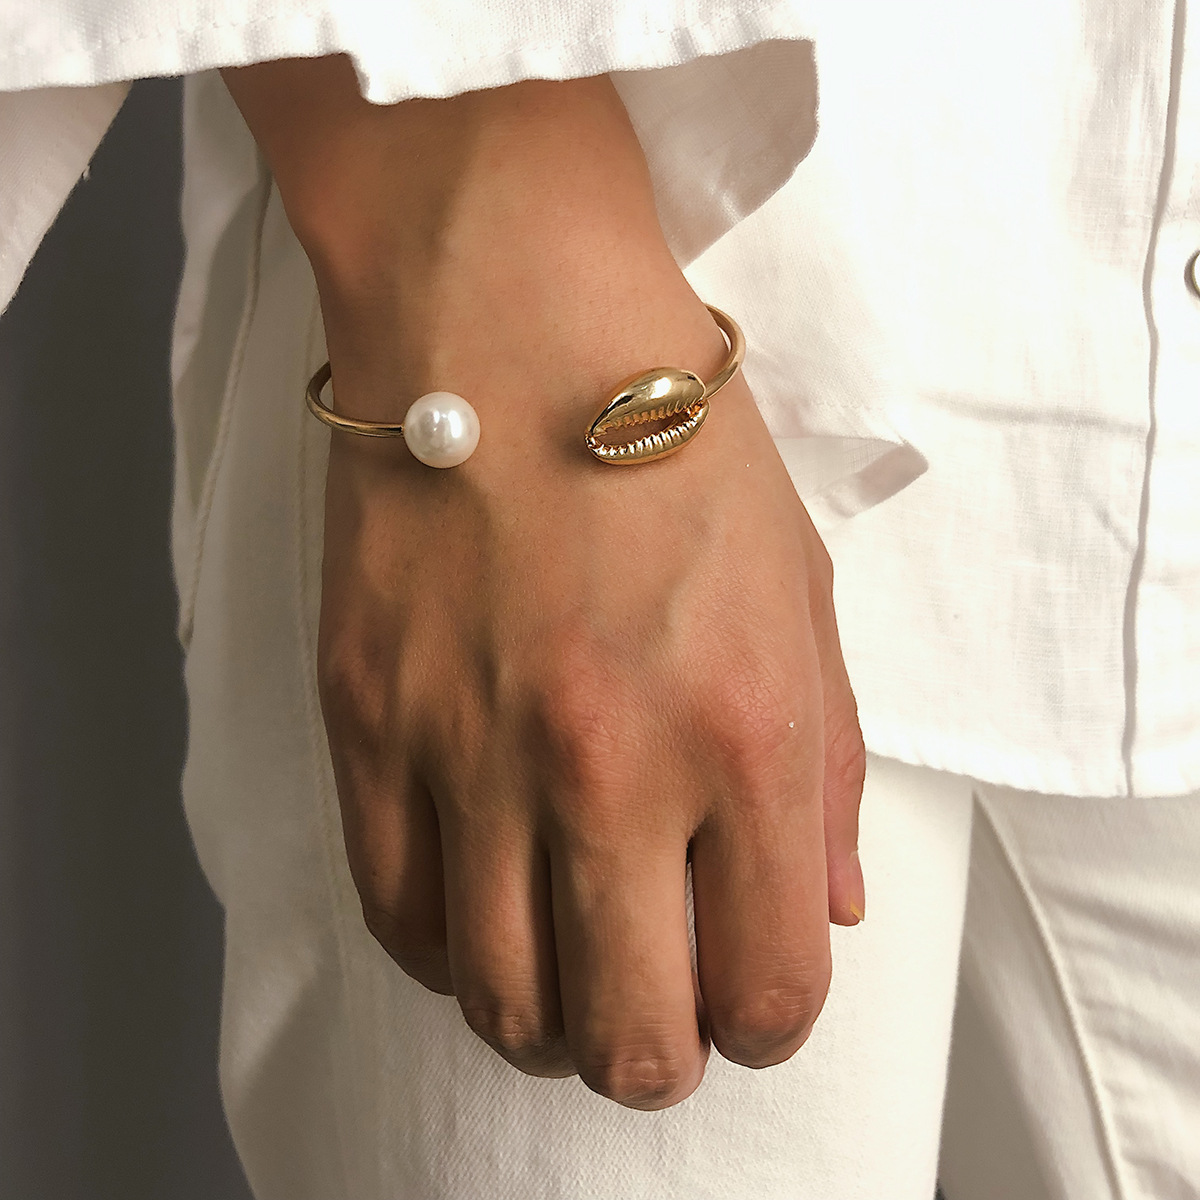 Gold Color Cowrie Shell Bracelets for Women Pearl Beads Charm Cuff Opening Bracelet Bohemian Beach Jewelry Mujer Pulseras 12